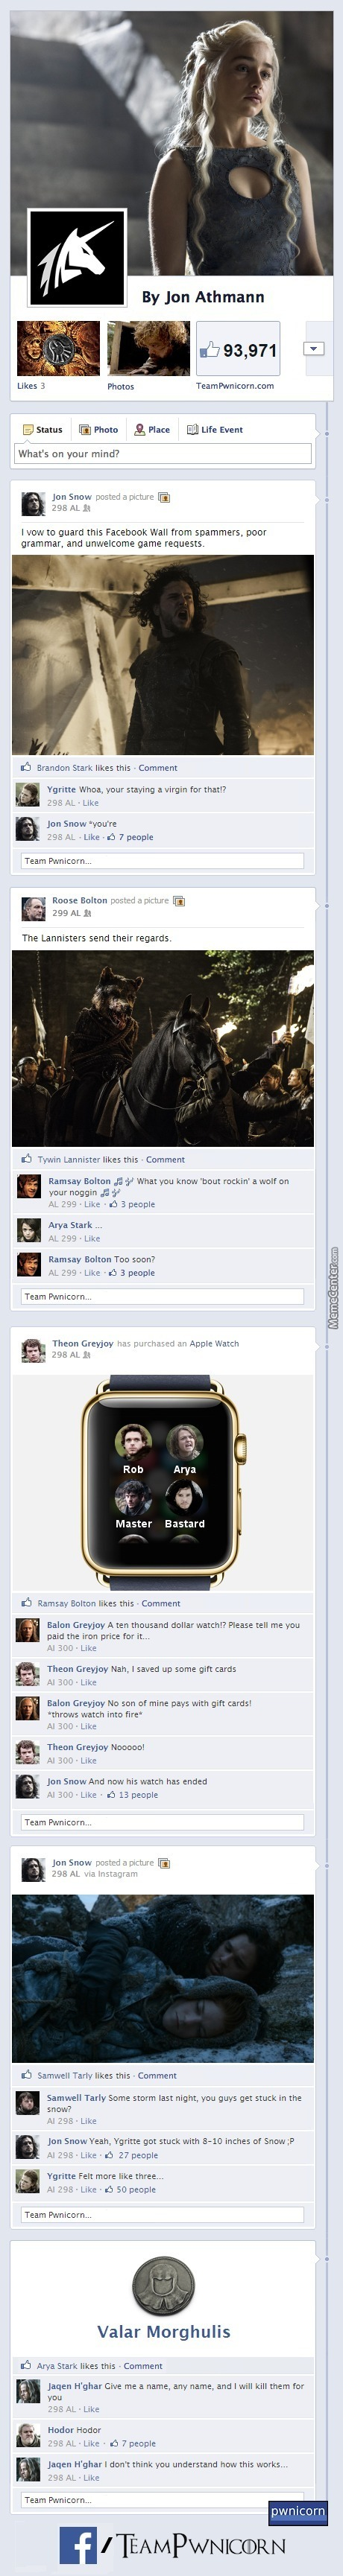 Game Of Thrones On Facebook (Part 2)